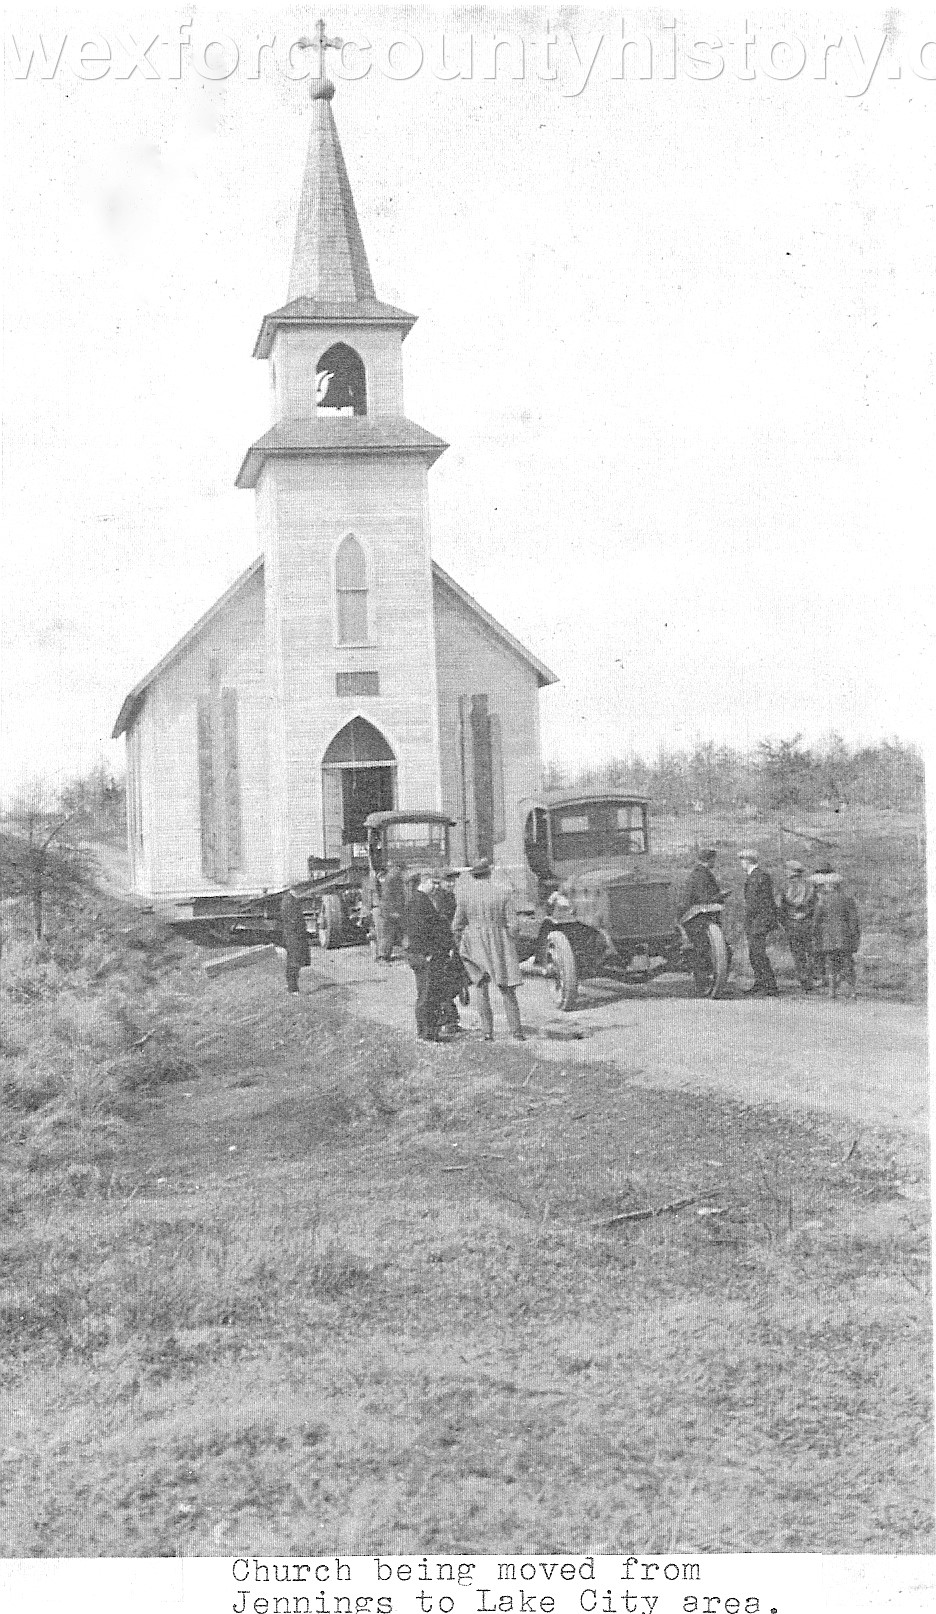 Cadillac-Business-Acme-Truck-Moving-Church-11